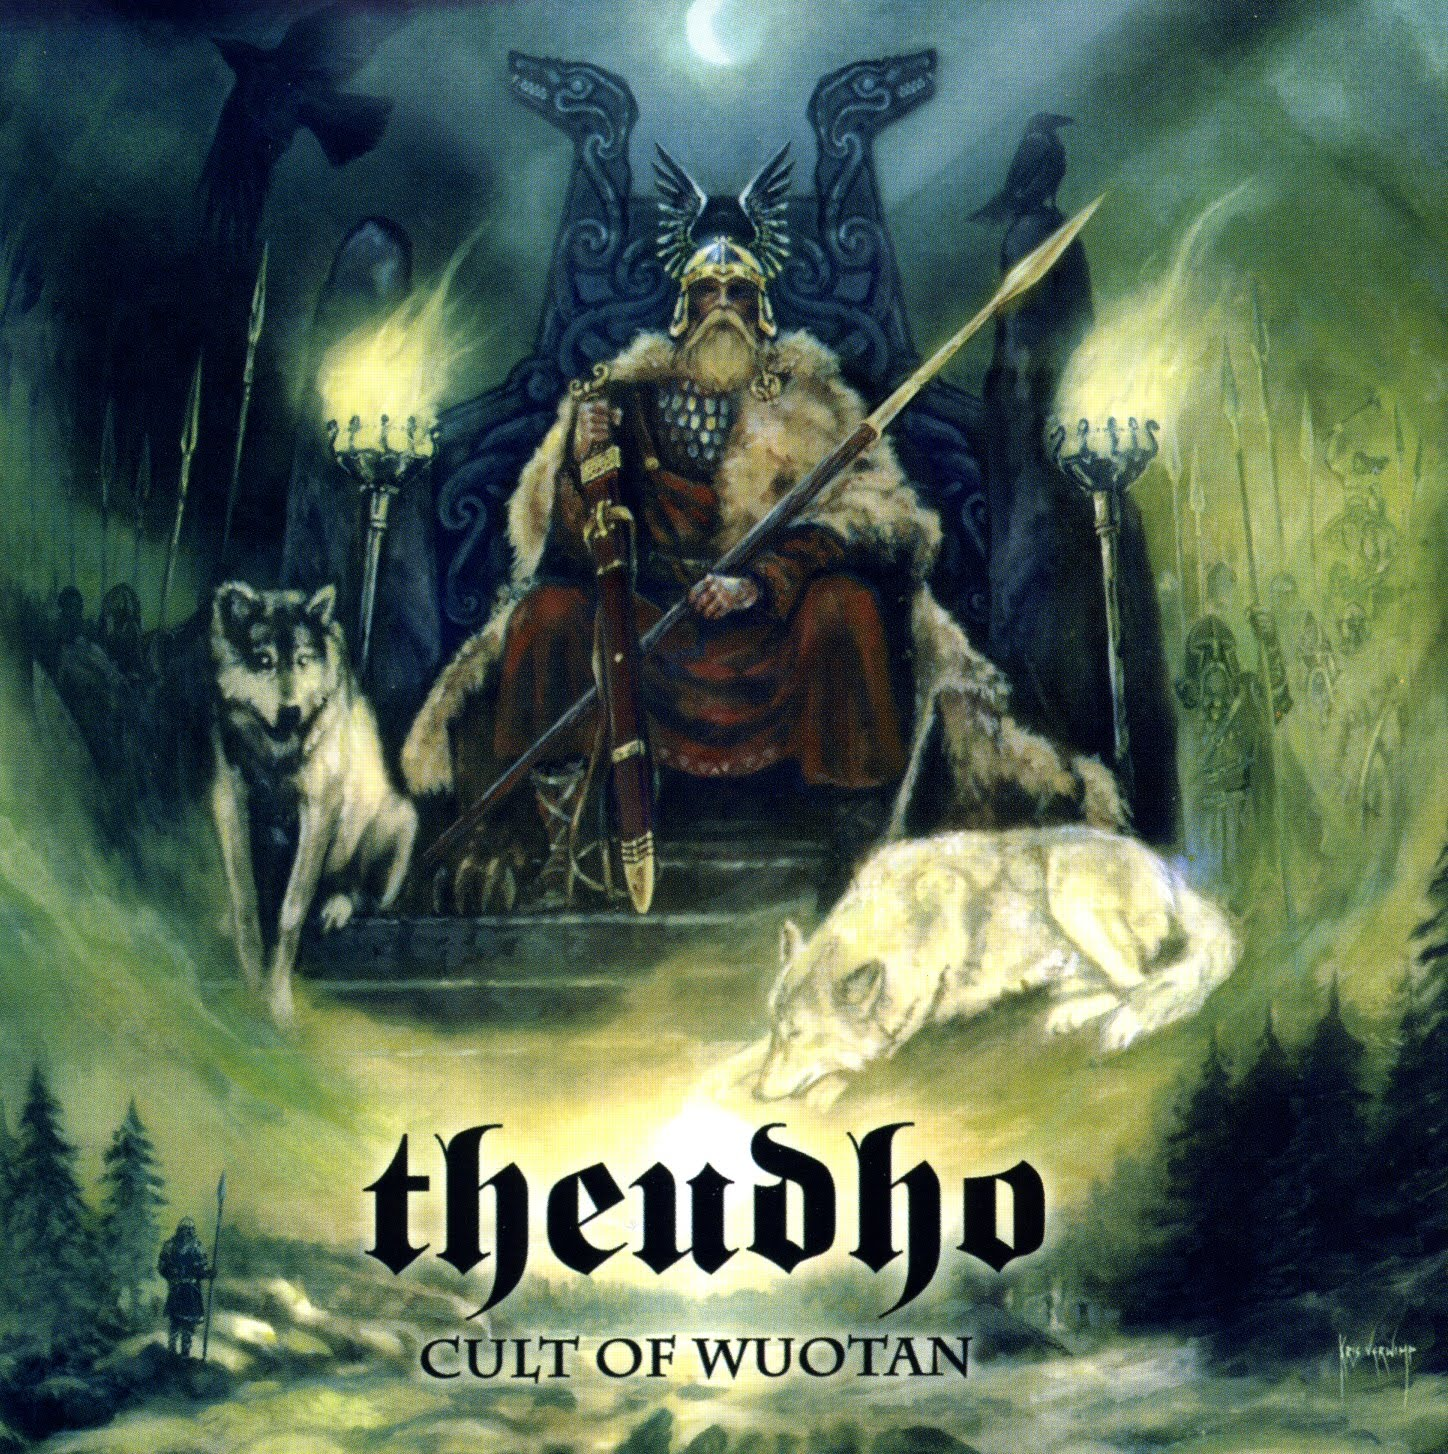 00-theudho-cult_of_wuotan-promo-2008-front-berc.jpg